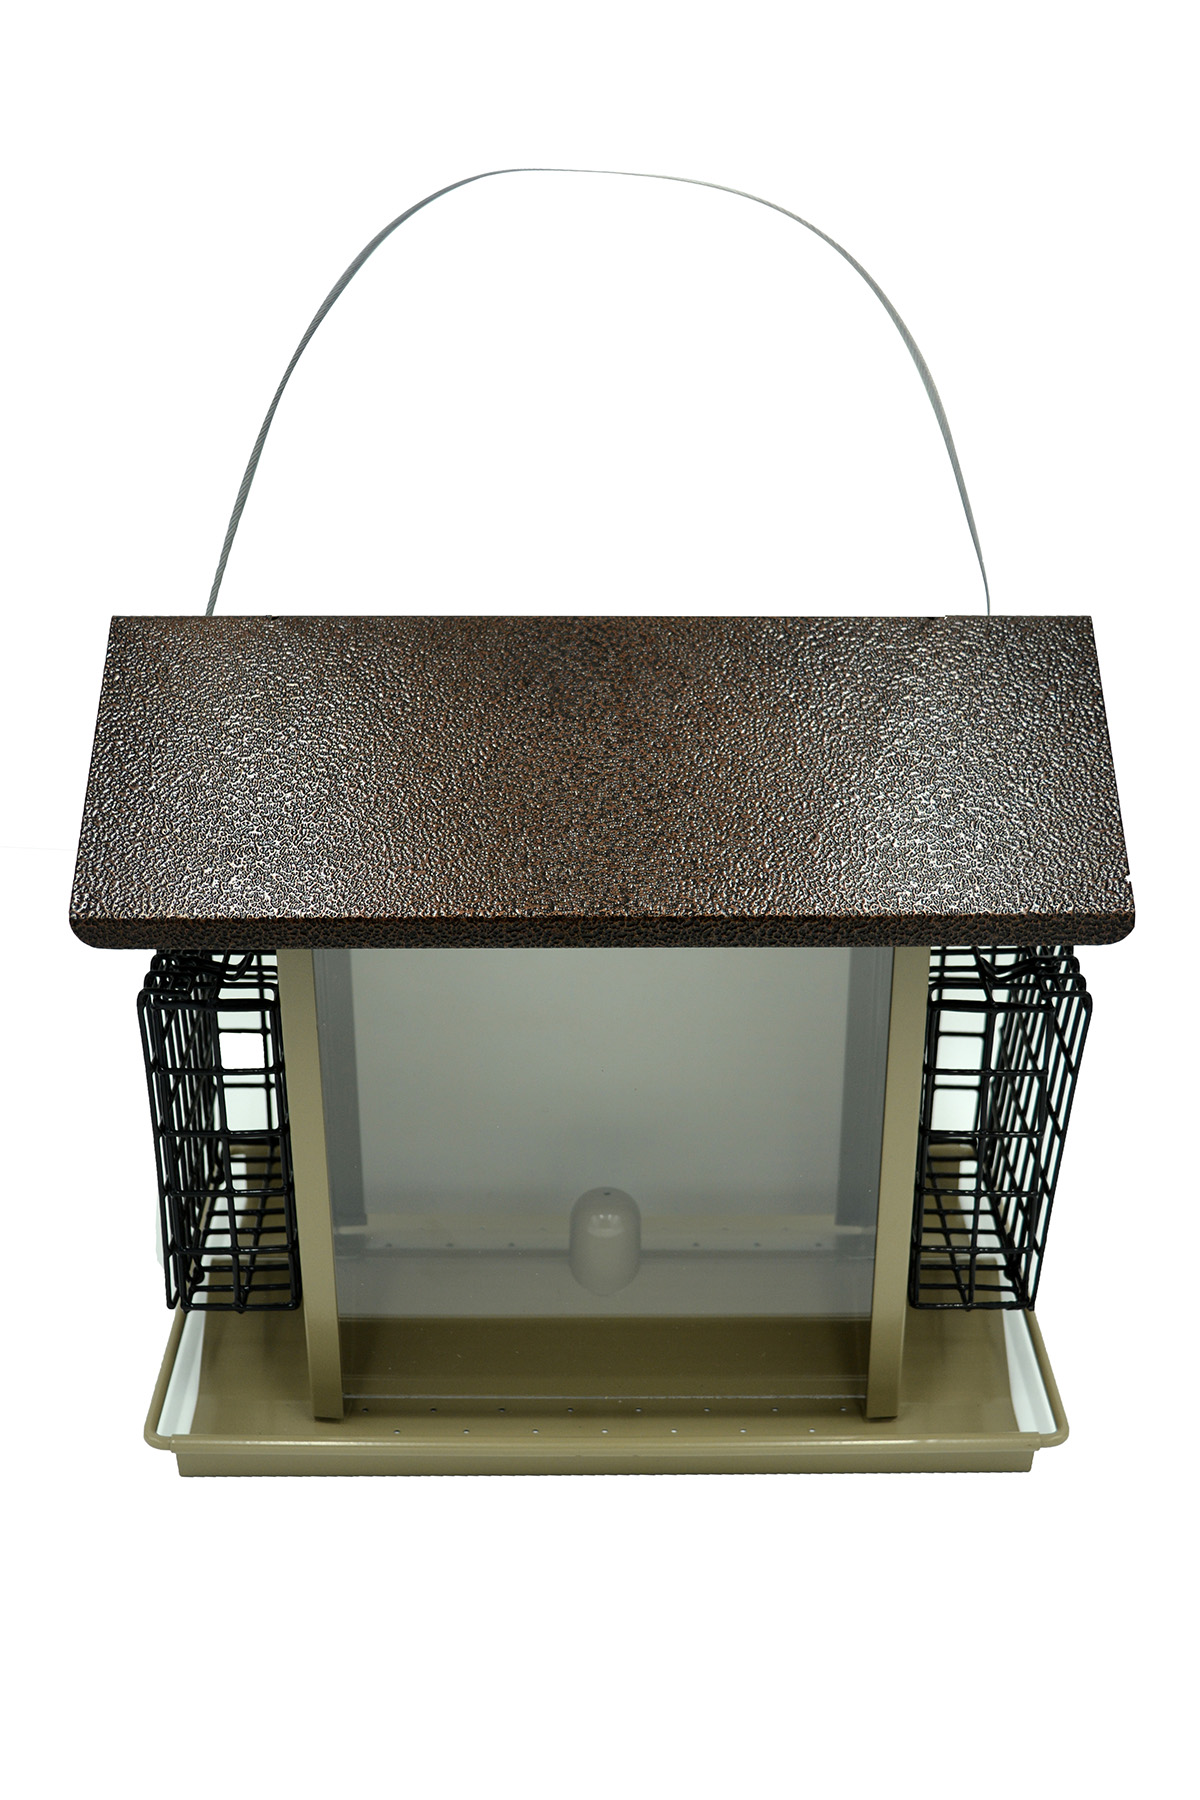 Zenport Large Bird Hopper Feeder Z38073 6.3 qt Capacity, 9.41 x 13-1/2 x 8.27 inches, Hammered Copper